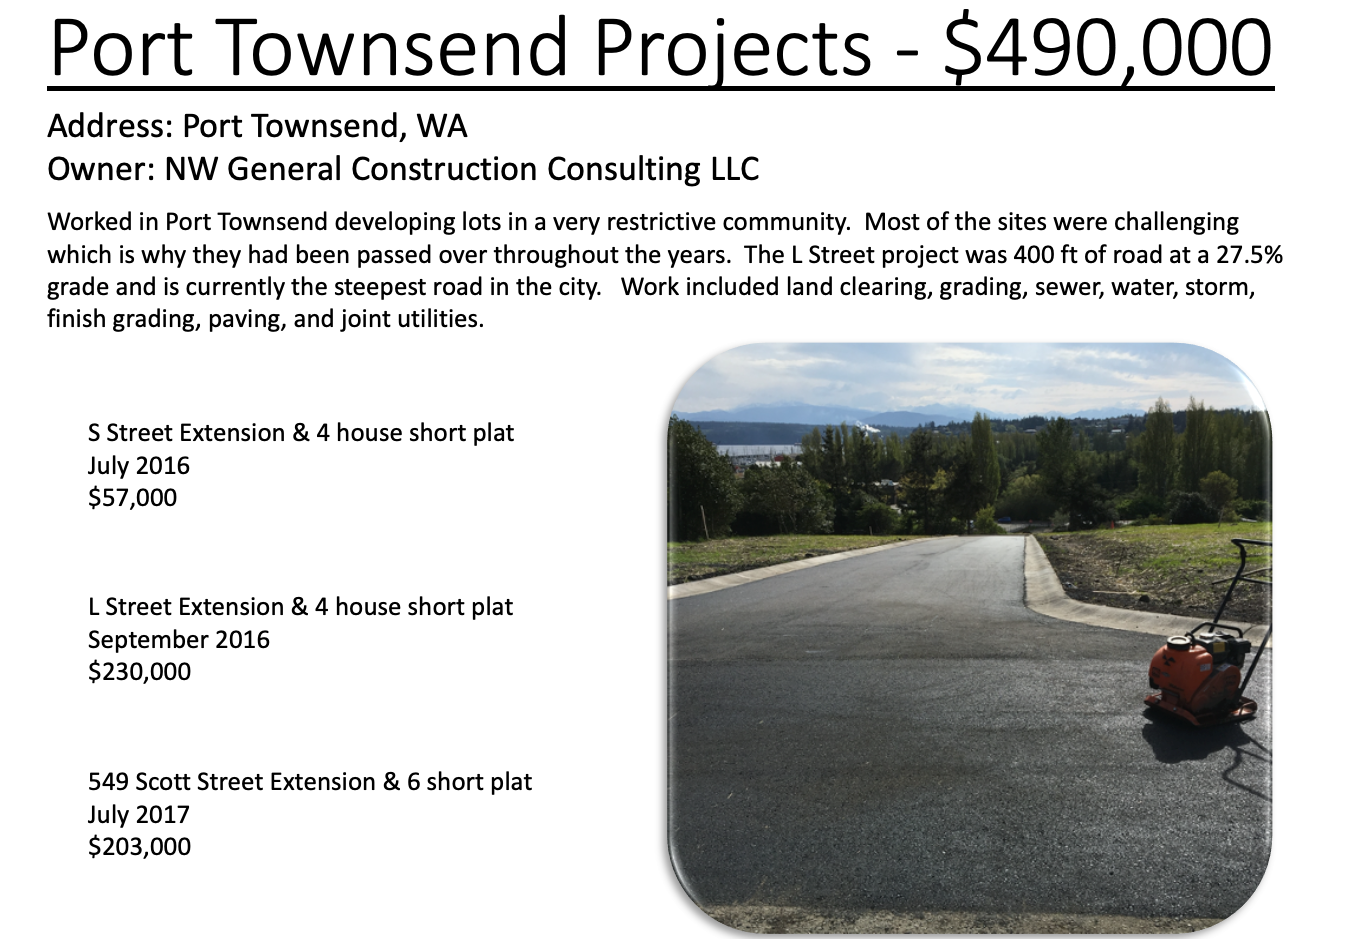 Port Townsend Project